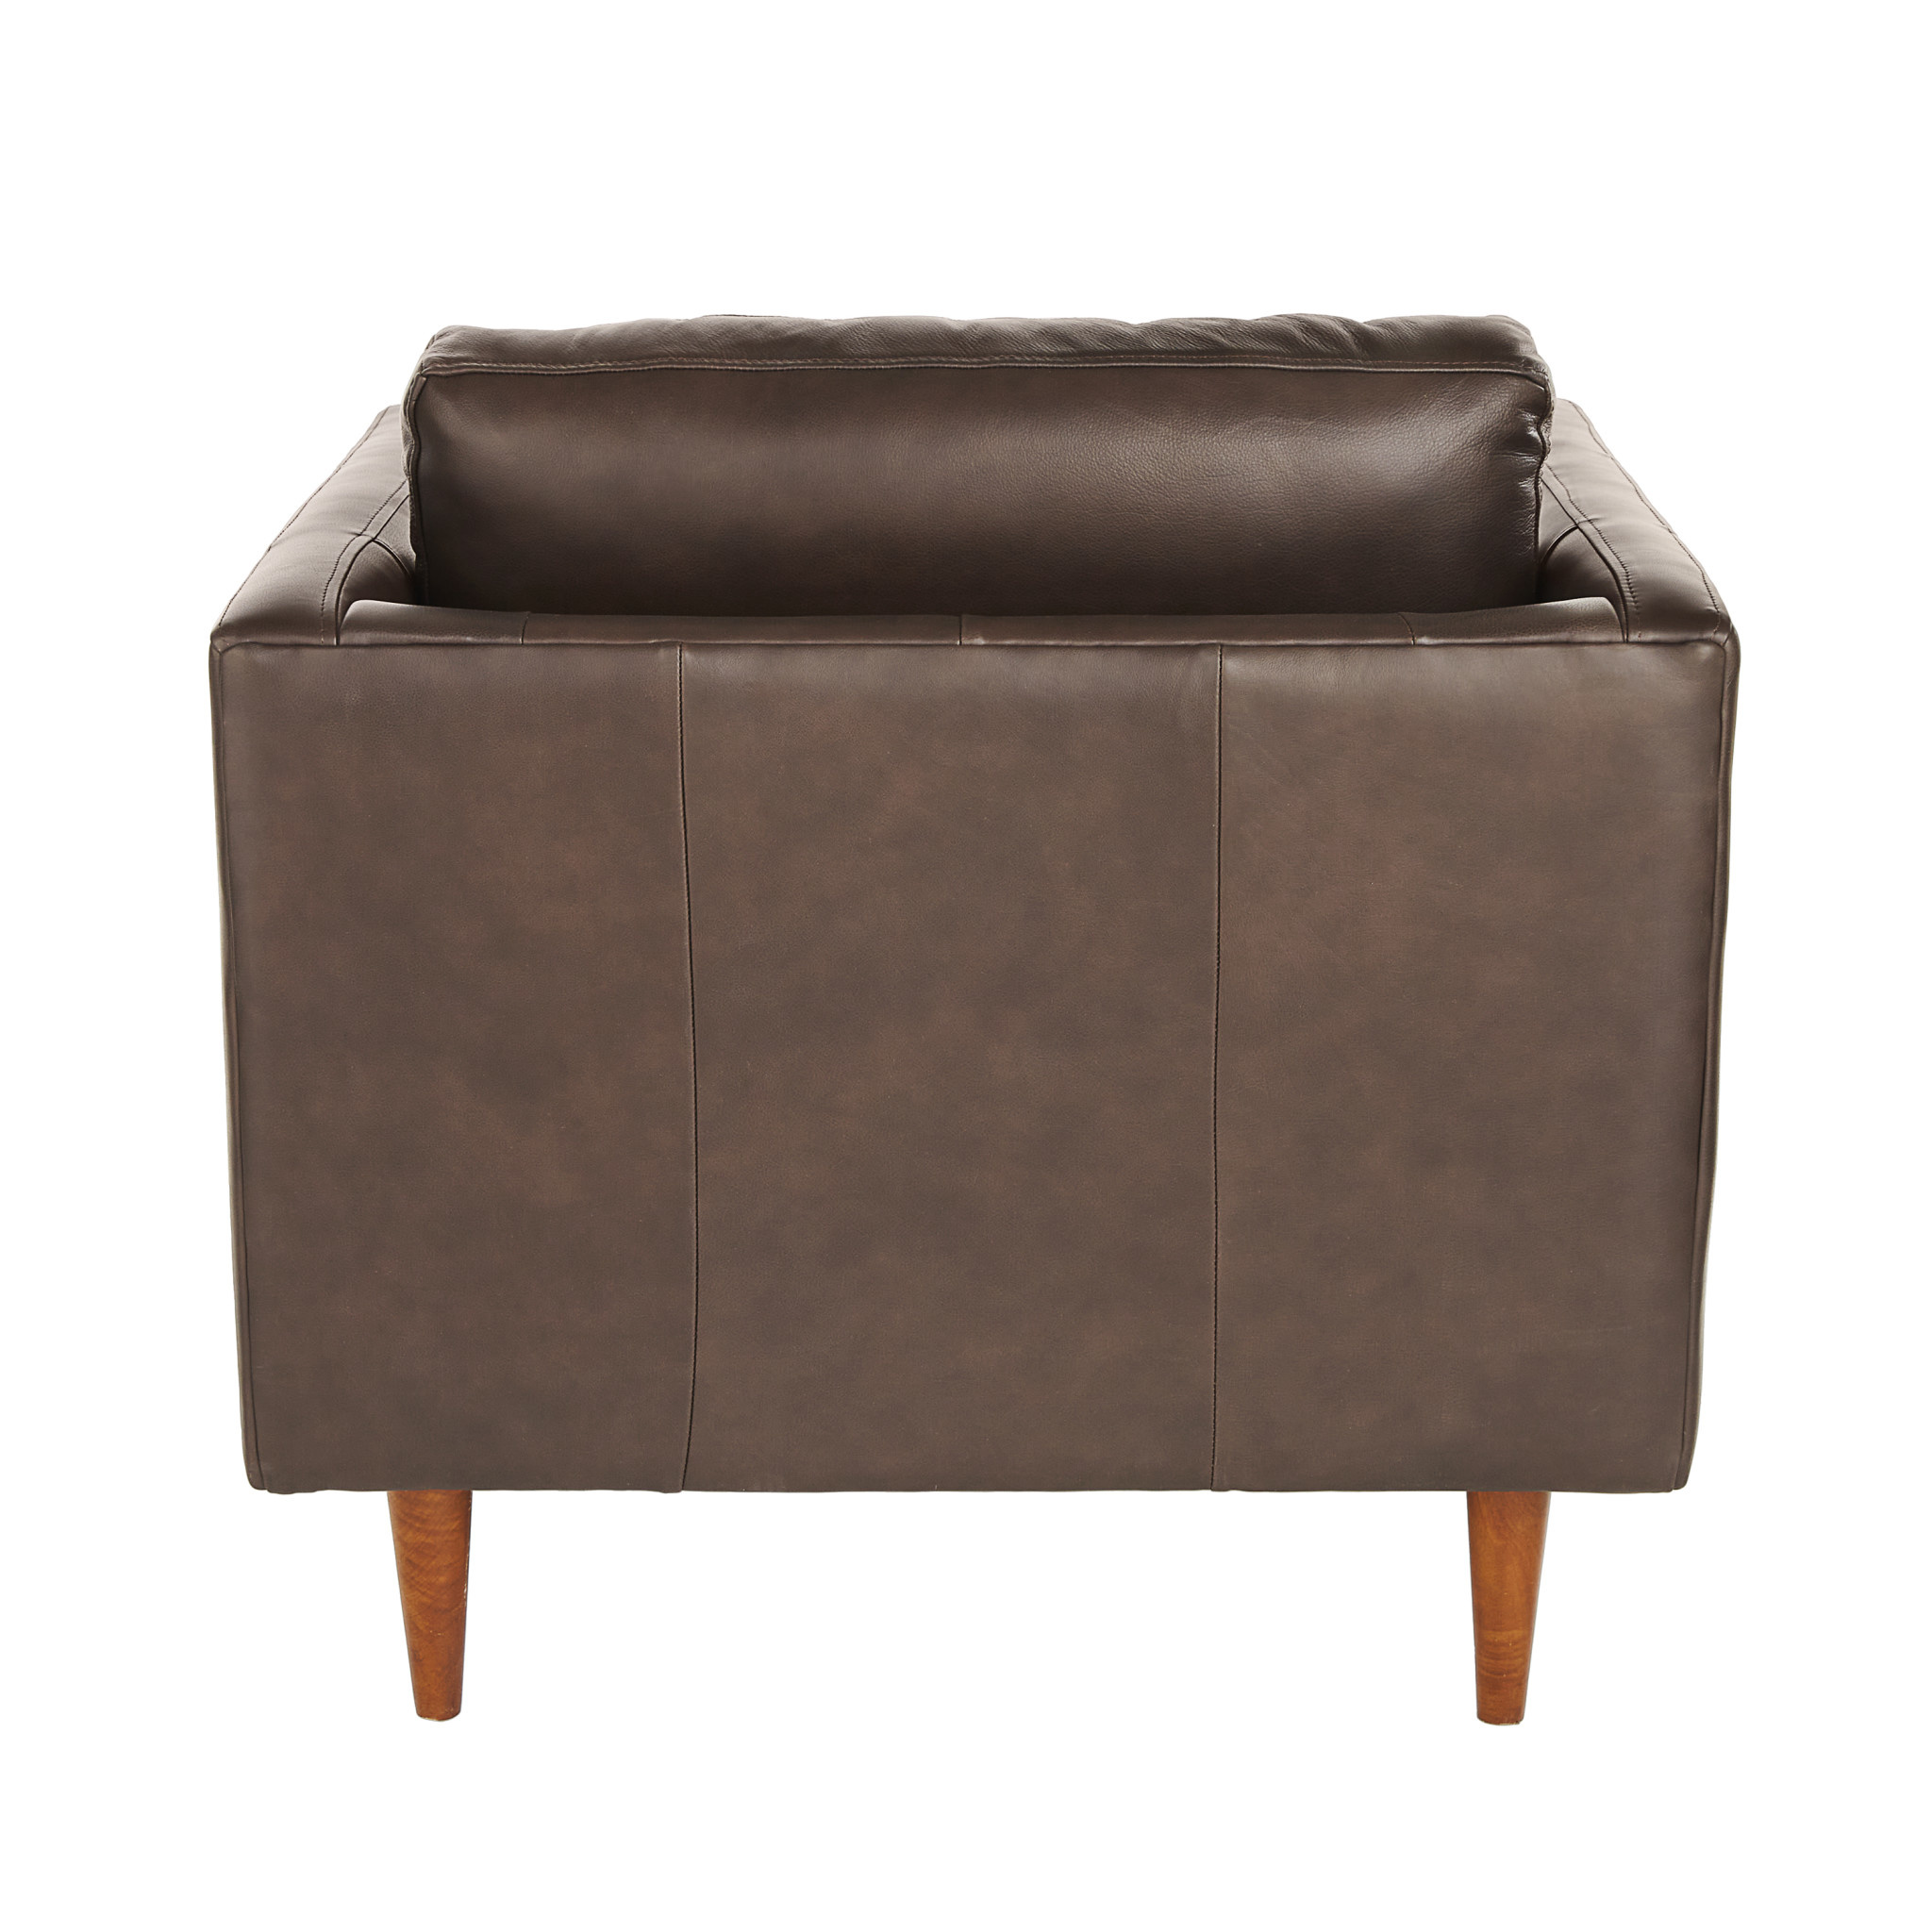 HOWSER CHAIR - AFRICA